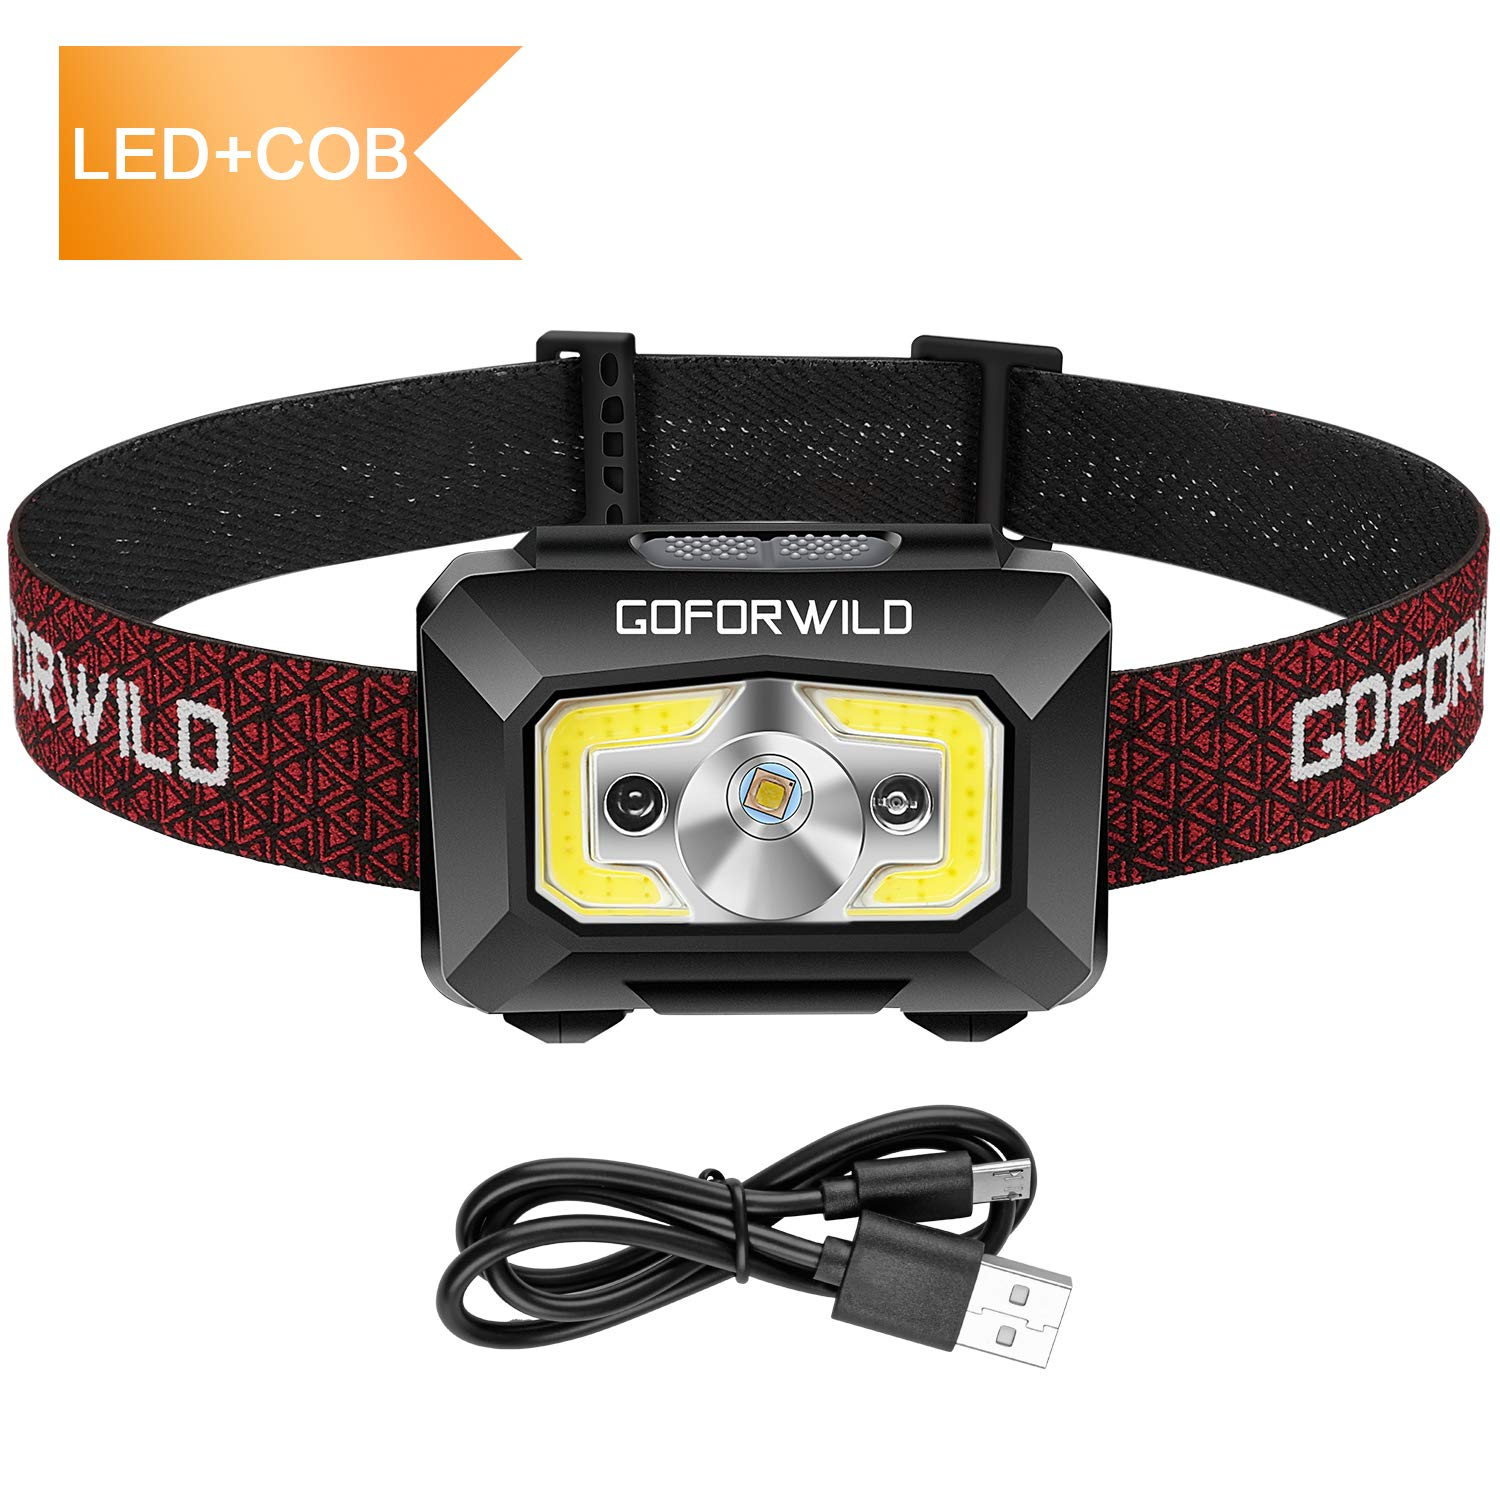 GOFORWILD Rechargeable Headlamp, COB Enhanced Headlamp, 500 Lumens Ultra Bright Cree LED Rechargeable Flashlight, Red Light and Motion Sensor, Waterproof, for Camping, Hiking, Outdoors by GOFORWILD